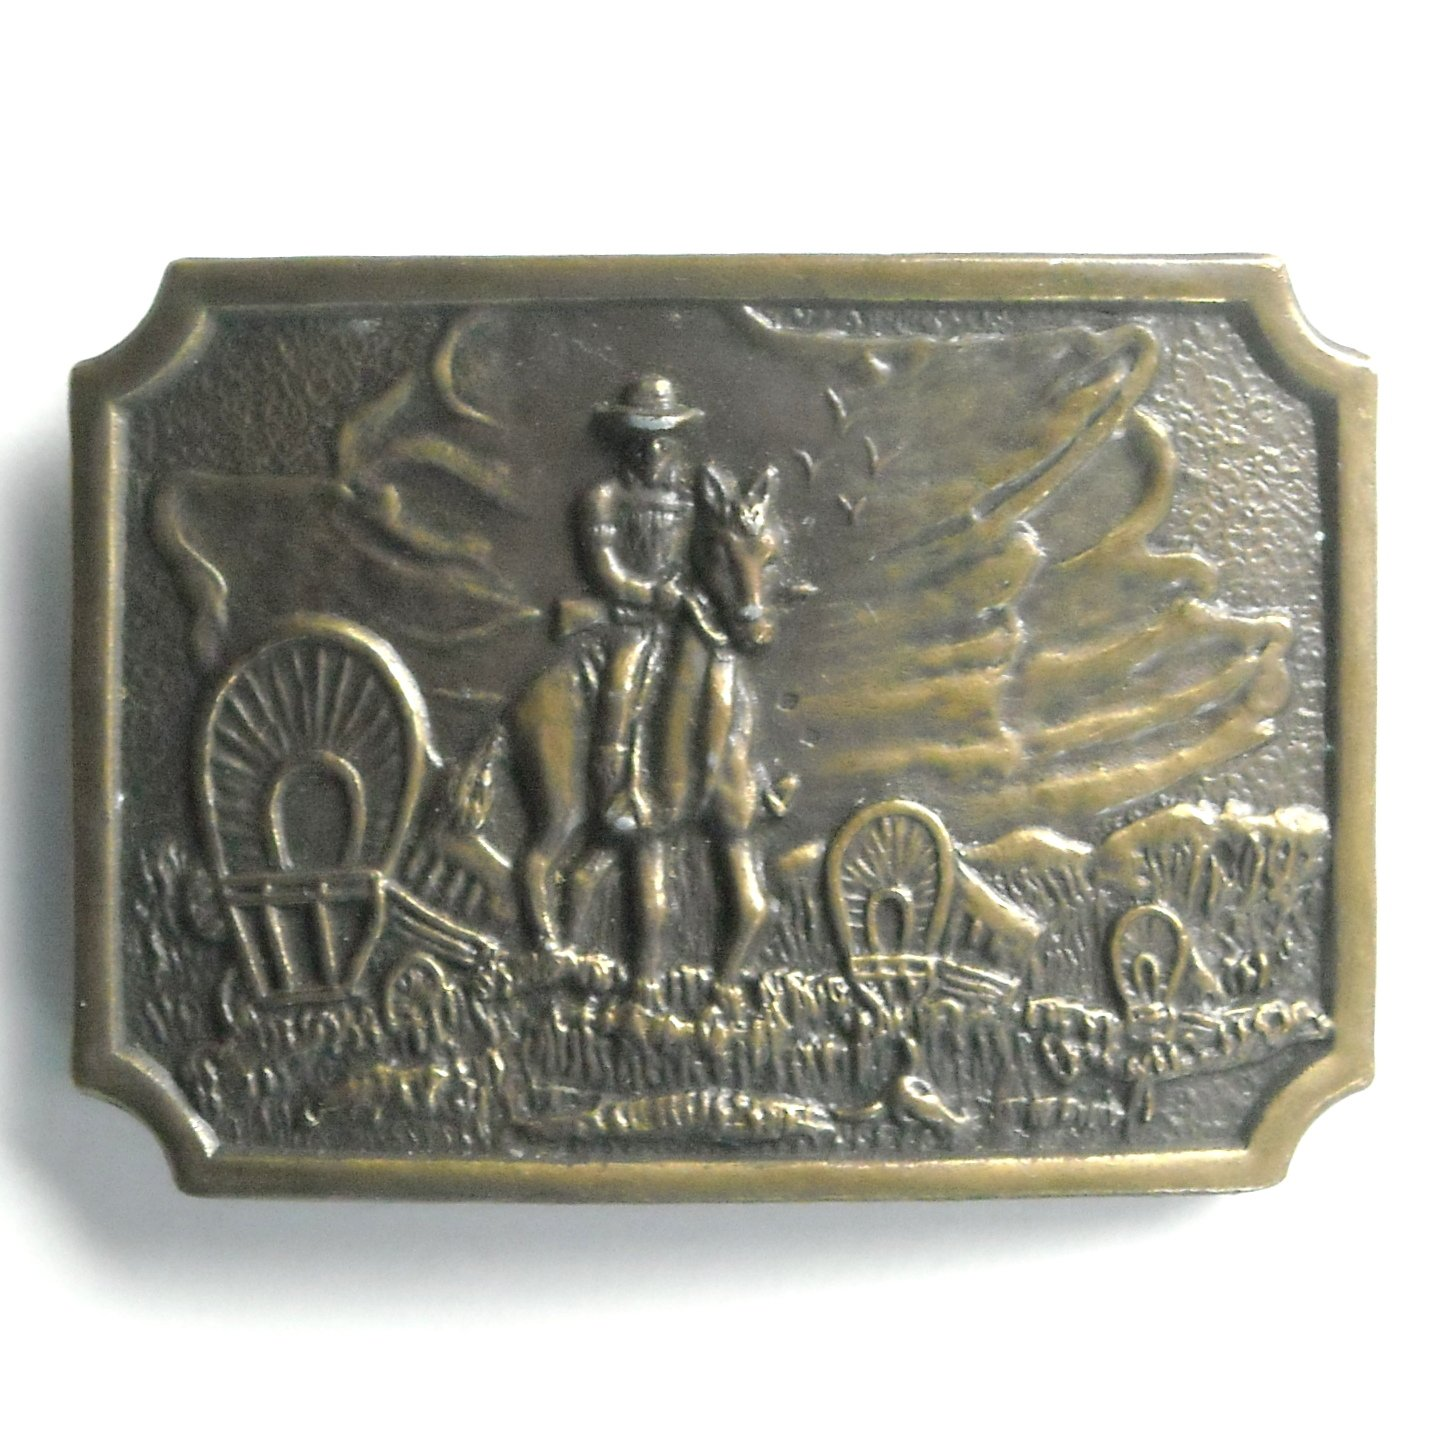 Vintage Cowboy Trail Boss Bronze color metal alloy belt buckle